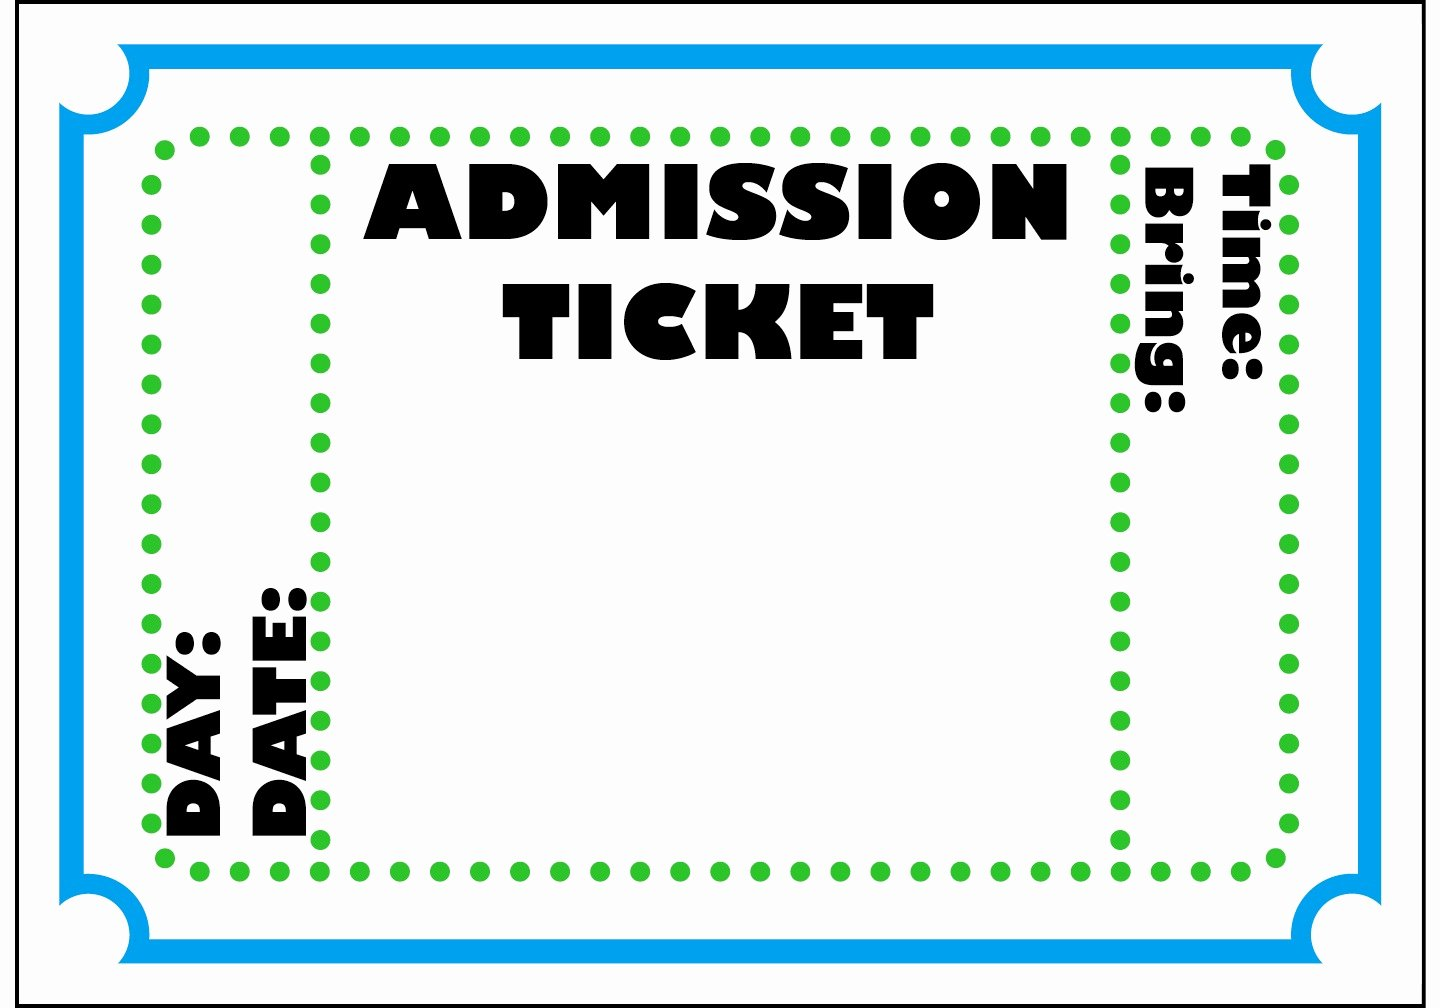 Free Printable Tickets Template Luxury Admit E Ticket Template Example Mughals